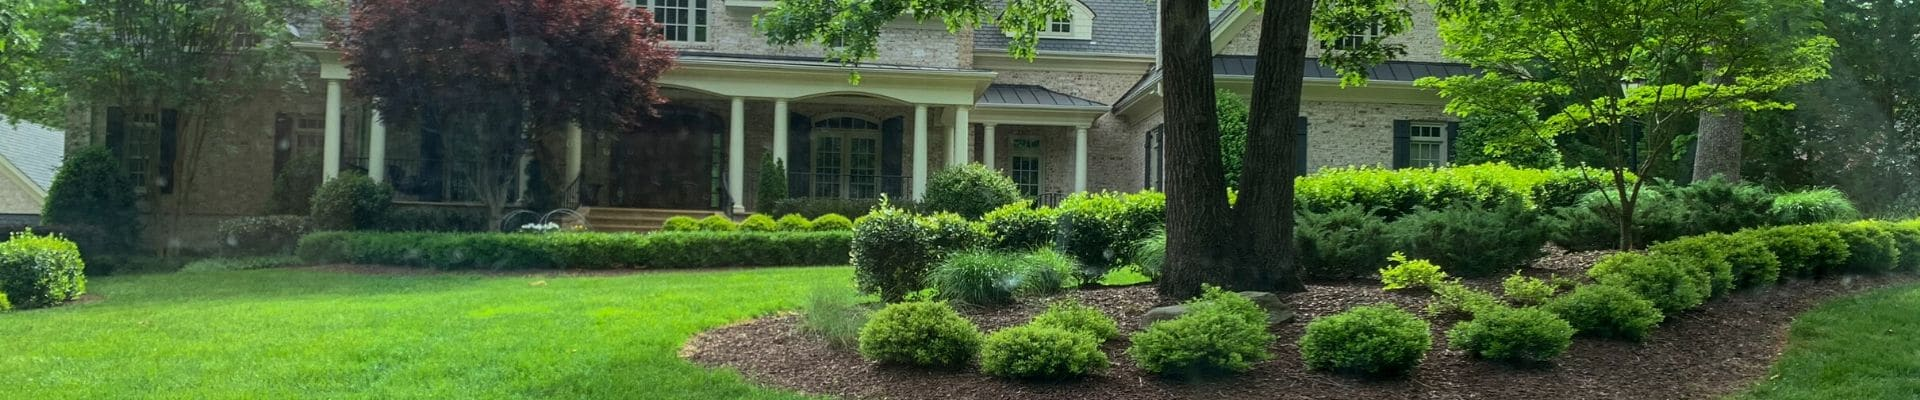 Wide angle shoot of a lawn and landscape customer's lawn.